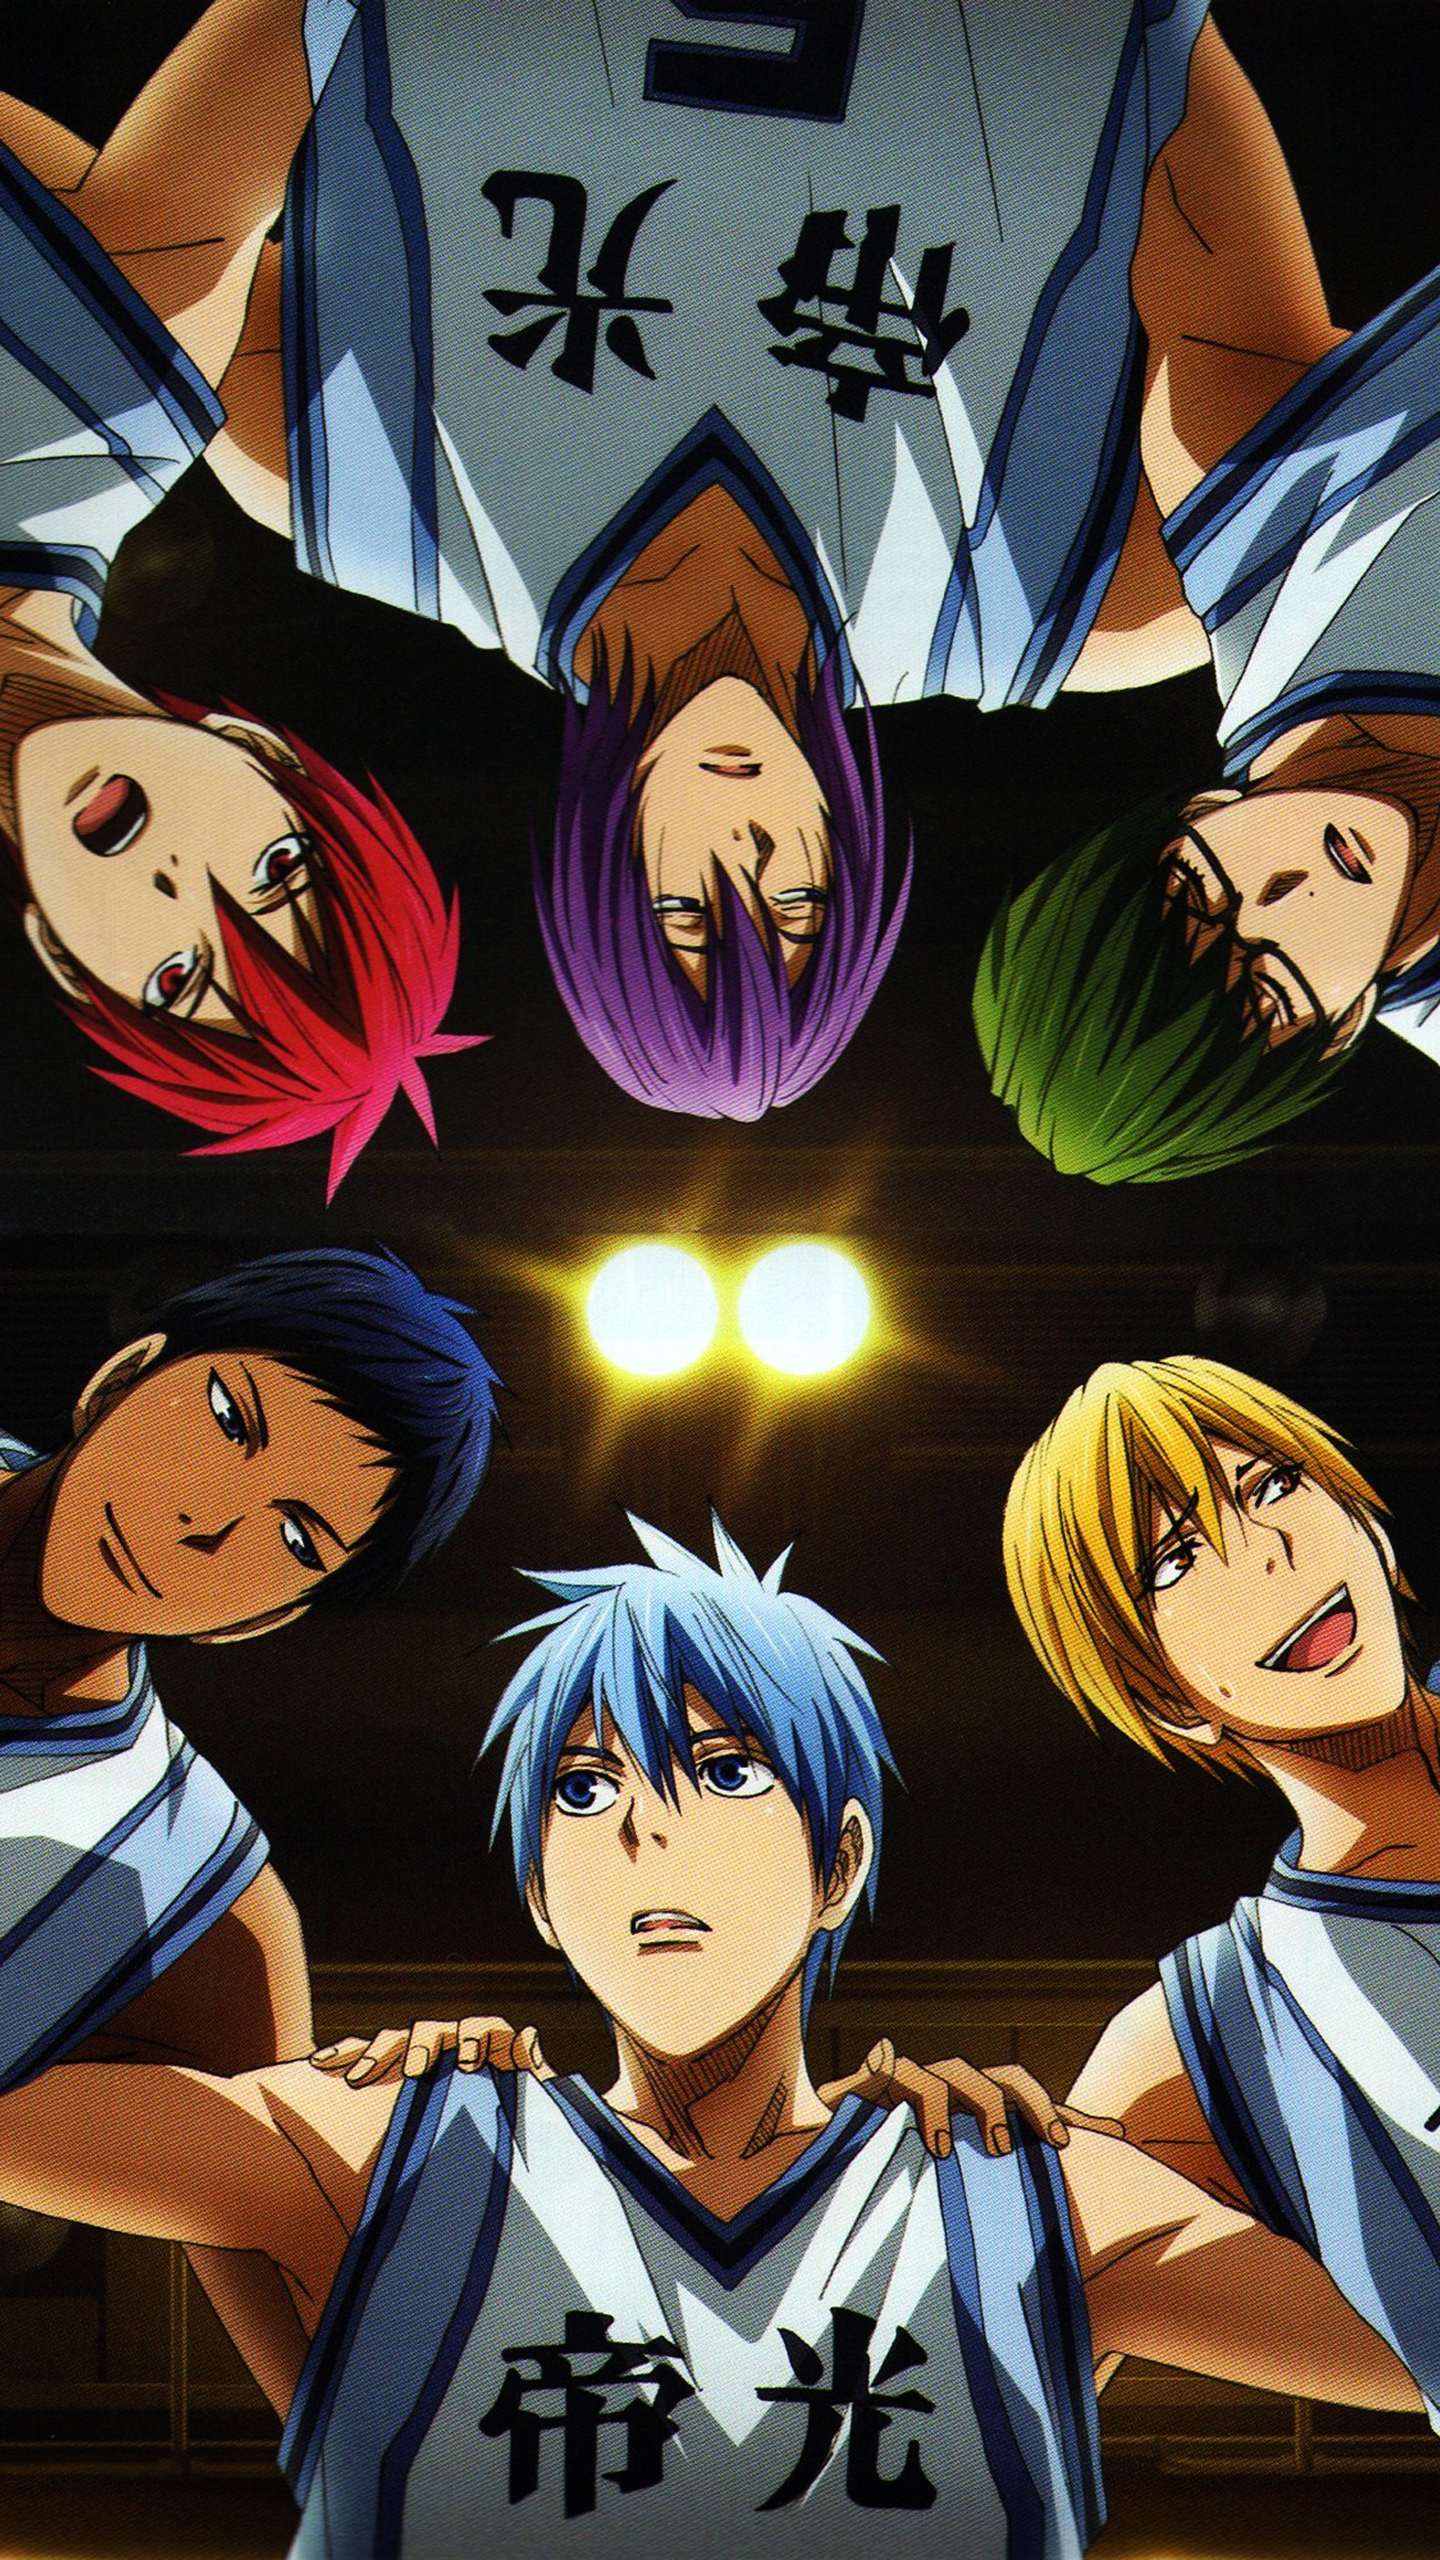 The forgotten lair kuroko no basket mobile wallpapers download all in this section voltagebd Gallery